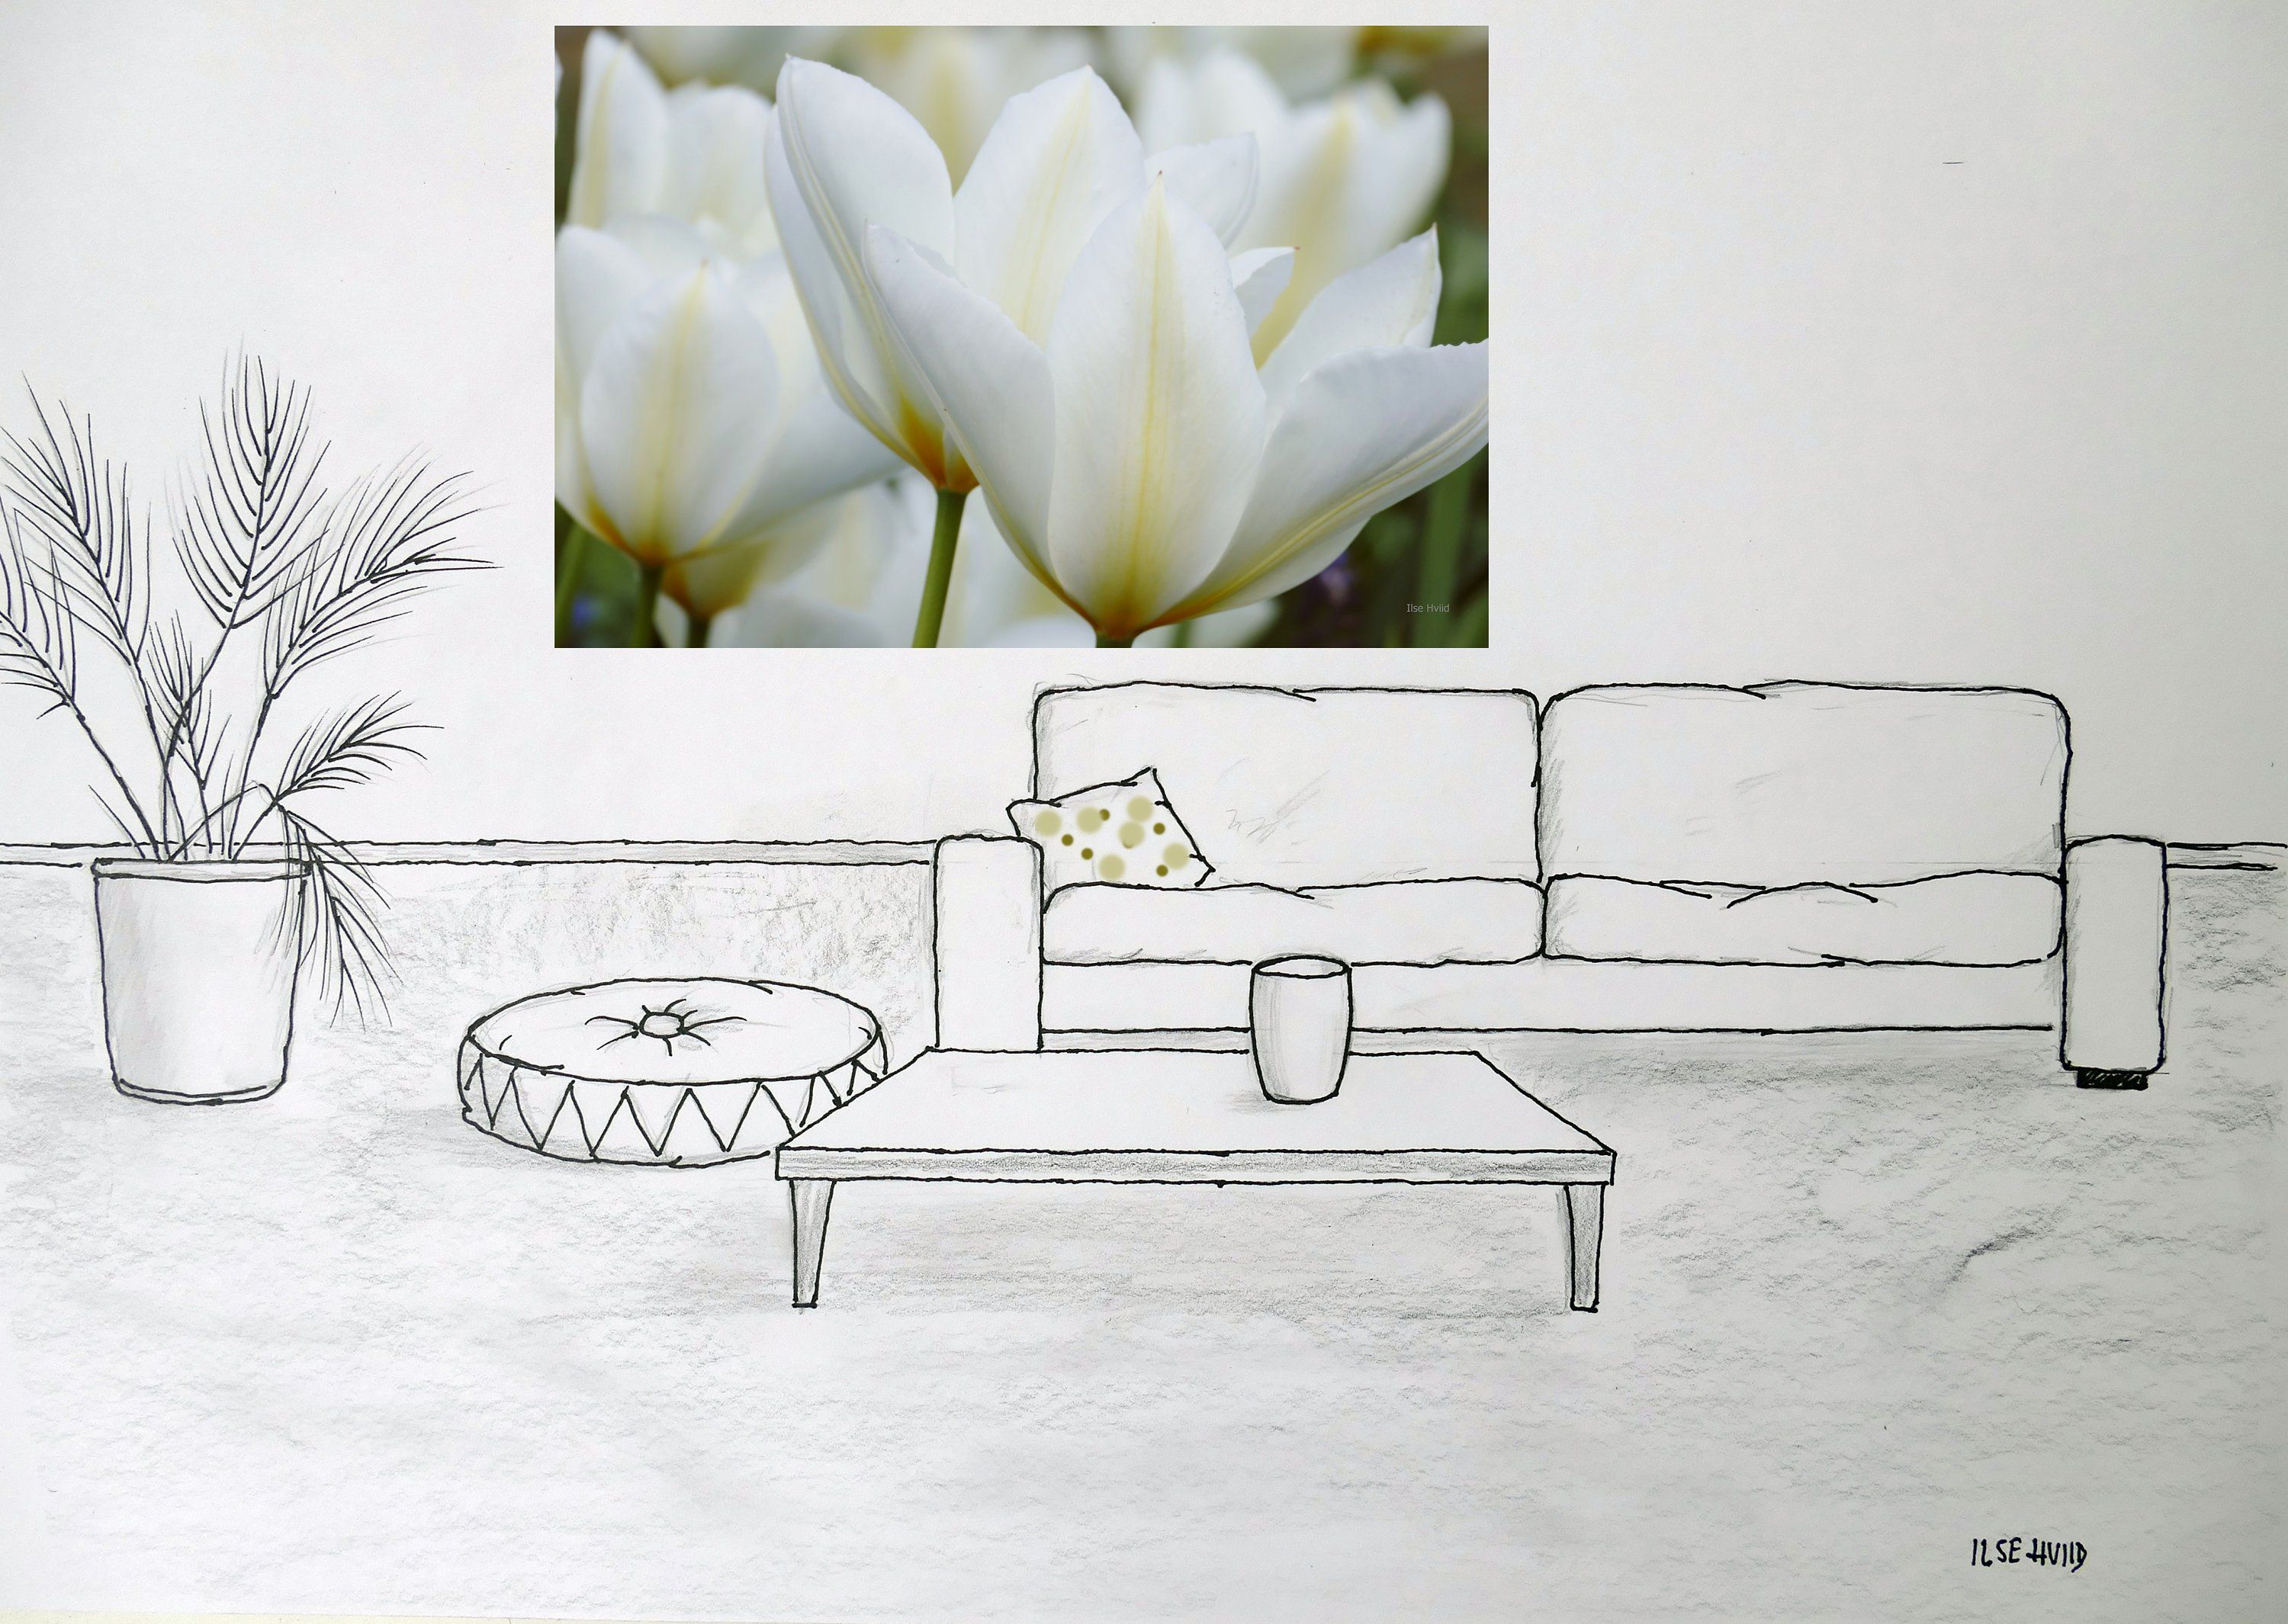 White Tulips Photograph Instant Digital Download